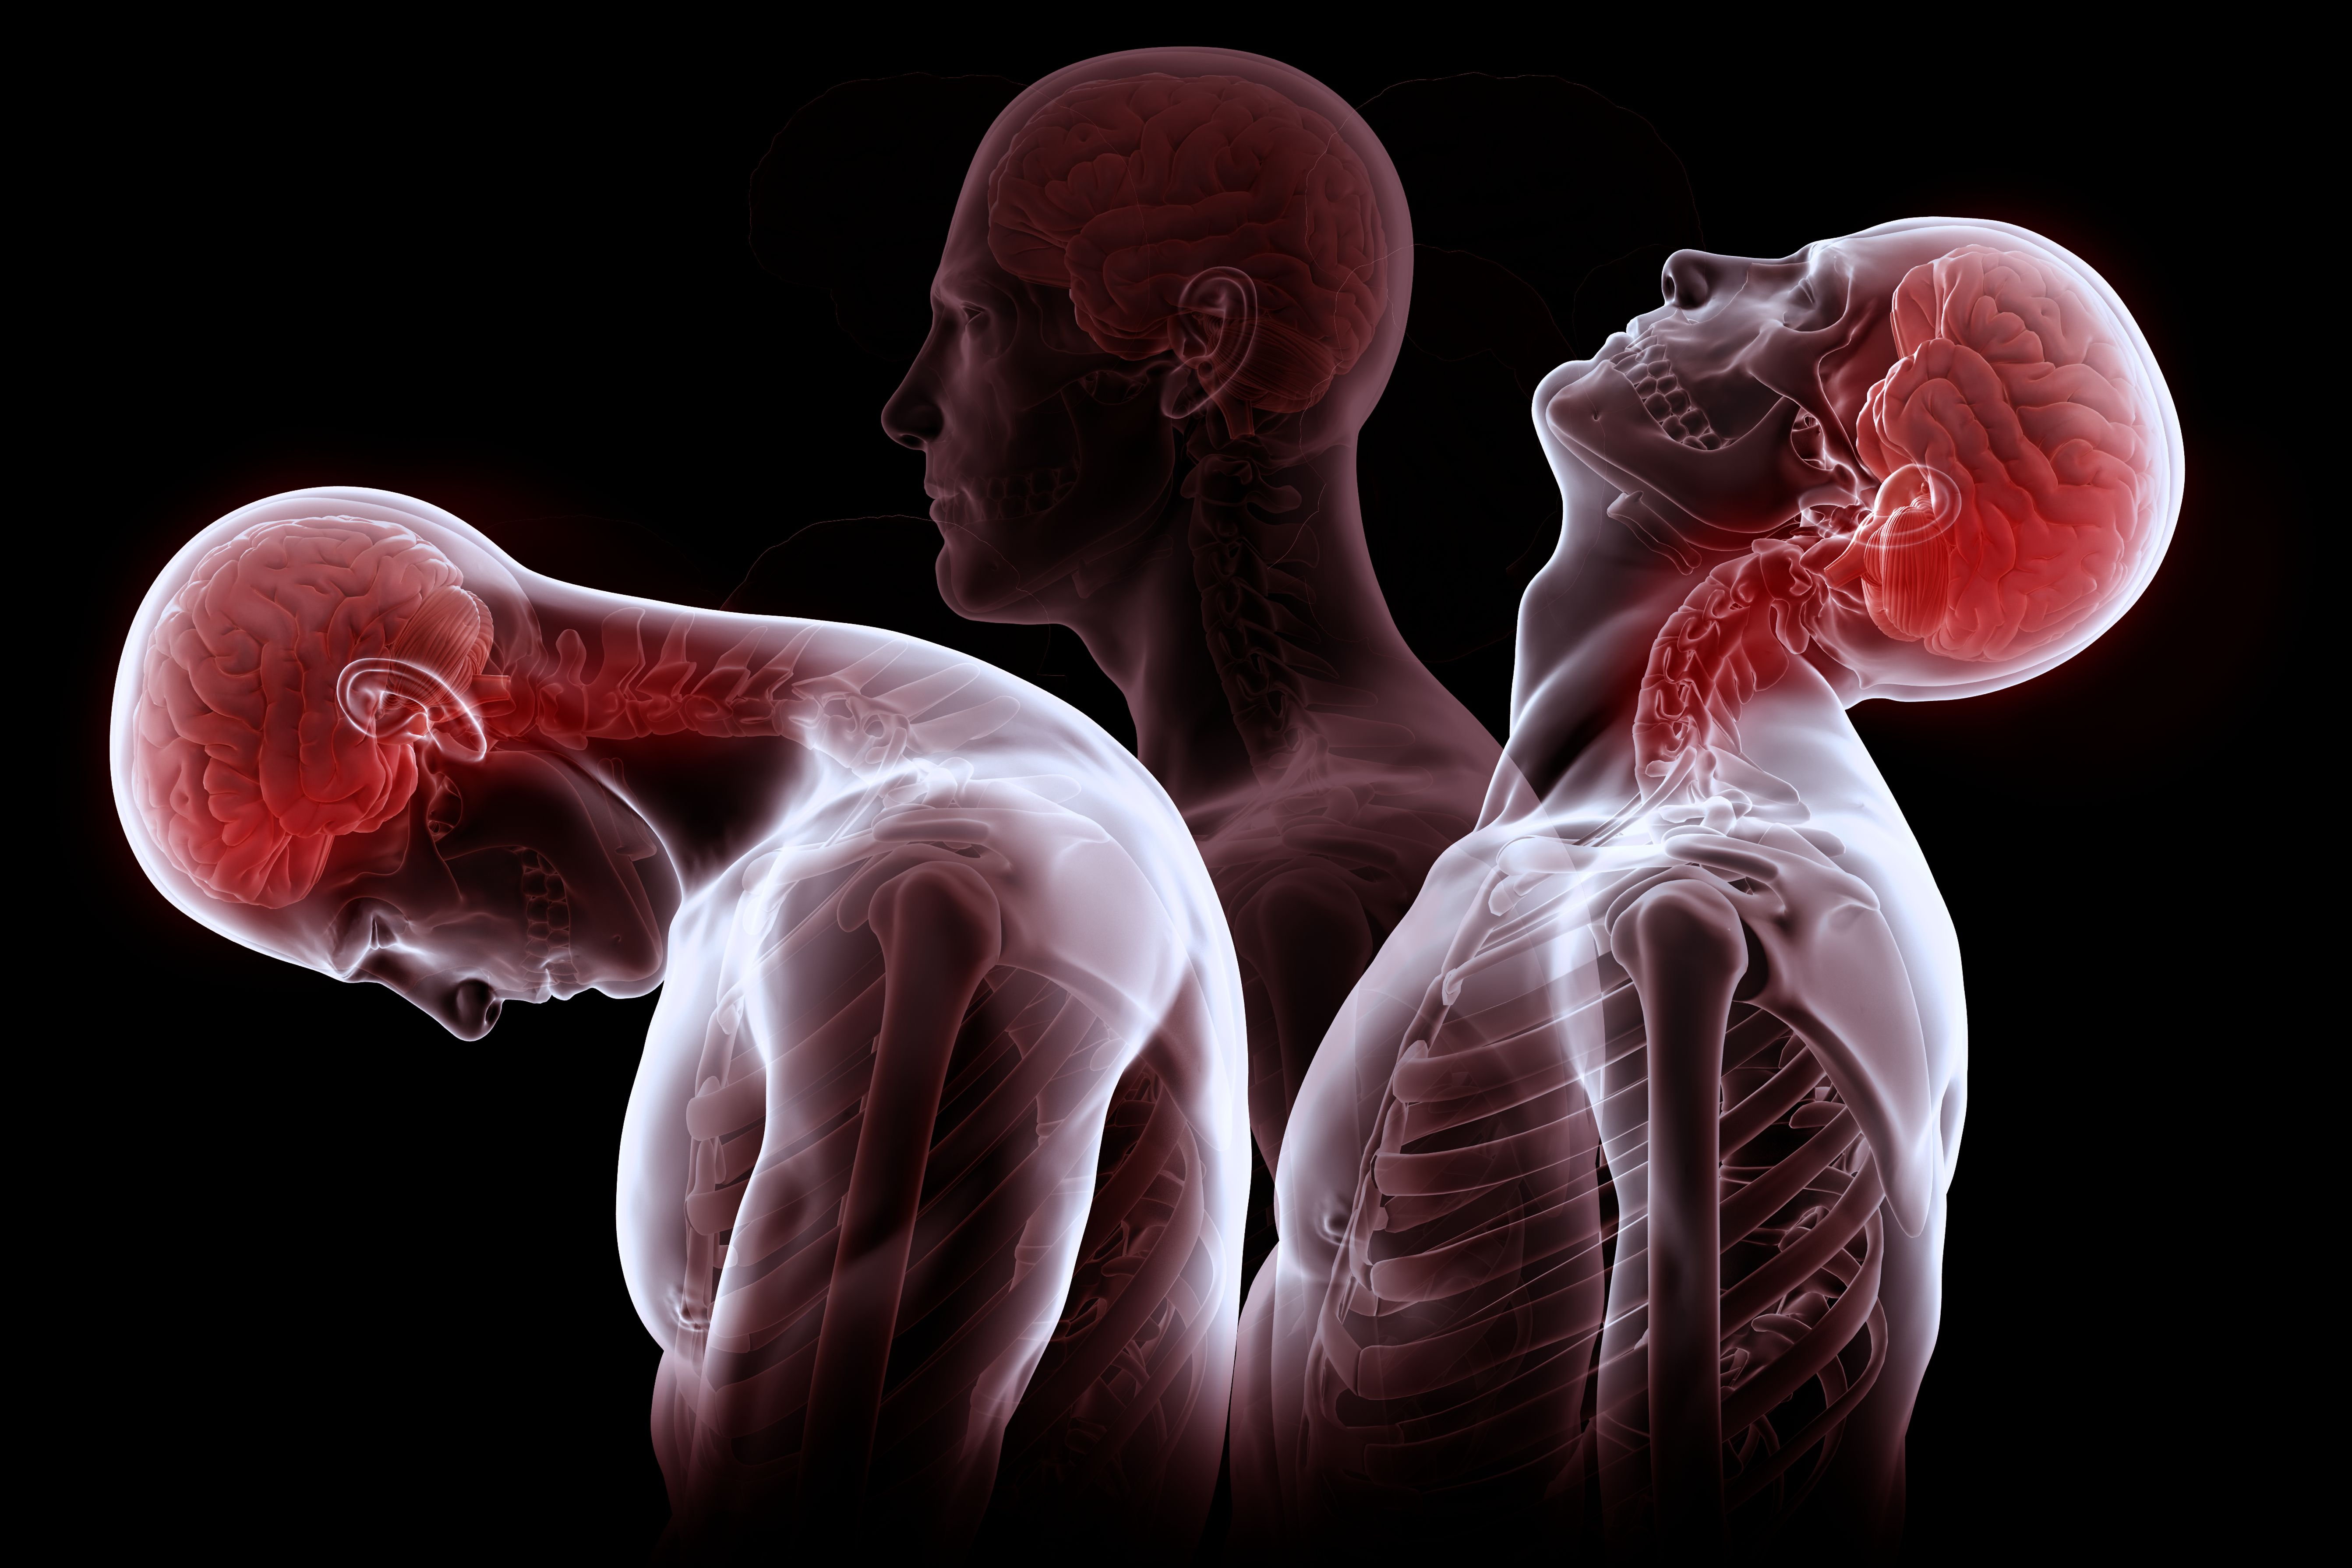 Whiplash illustration showing how the neck moves when this damage occurs